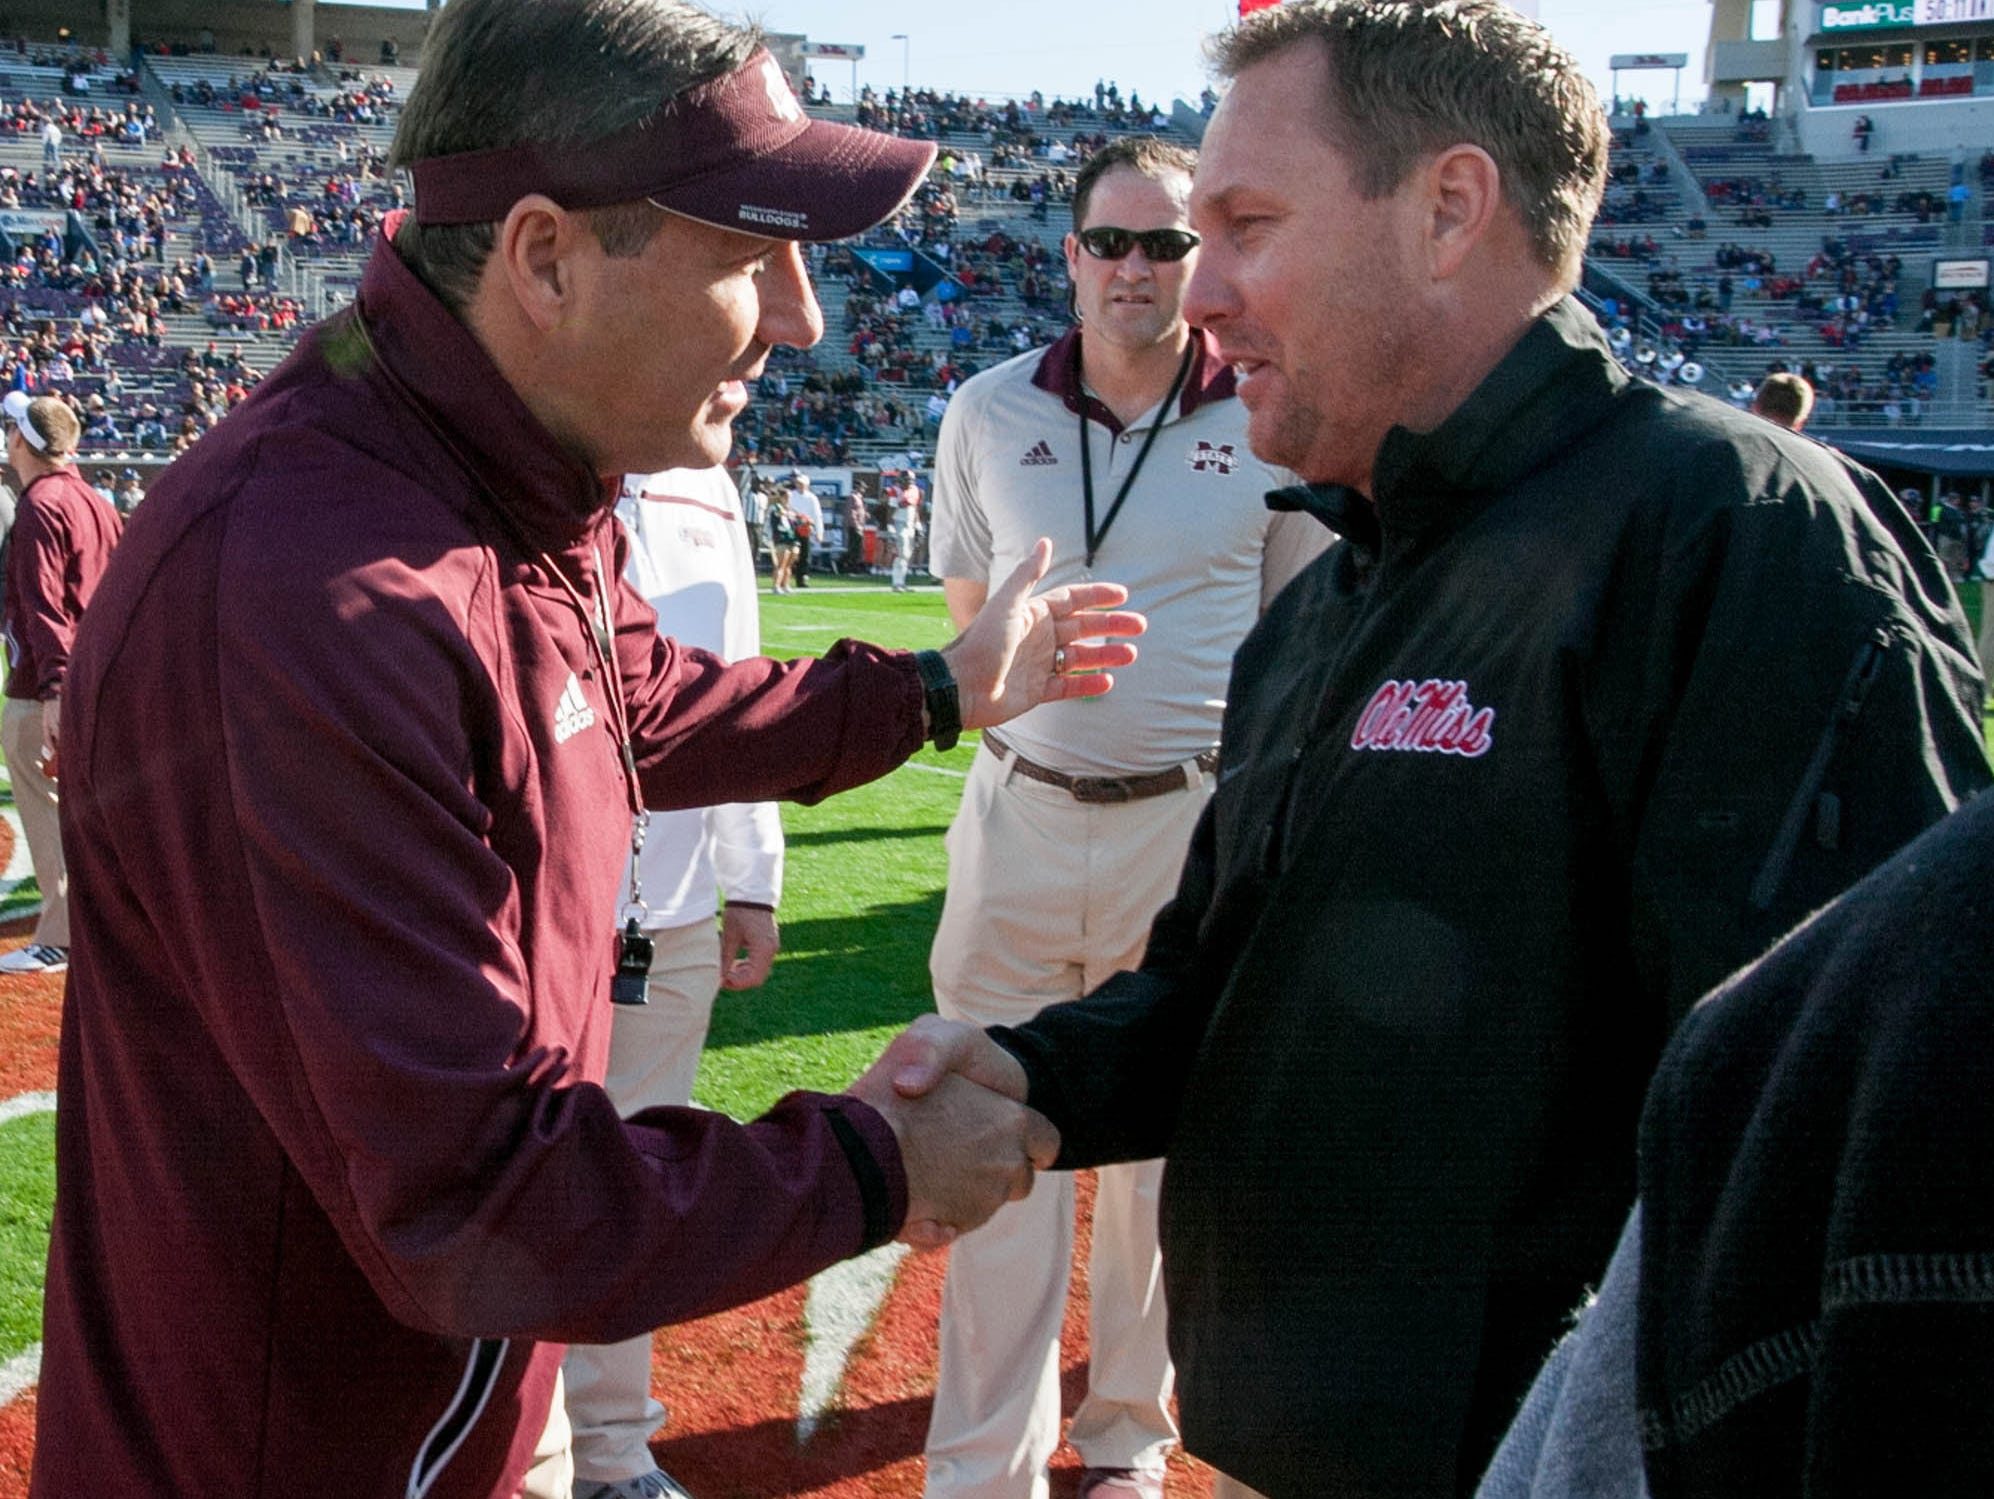 2017 05 kickoff time for national championship game - Dan Mullen Left And Hugh Freeze Right Will Face Off In The